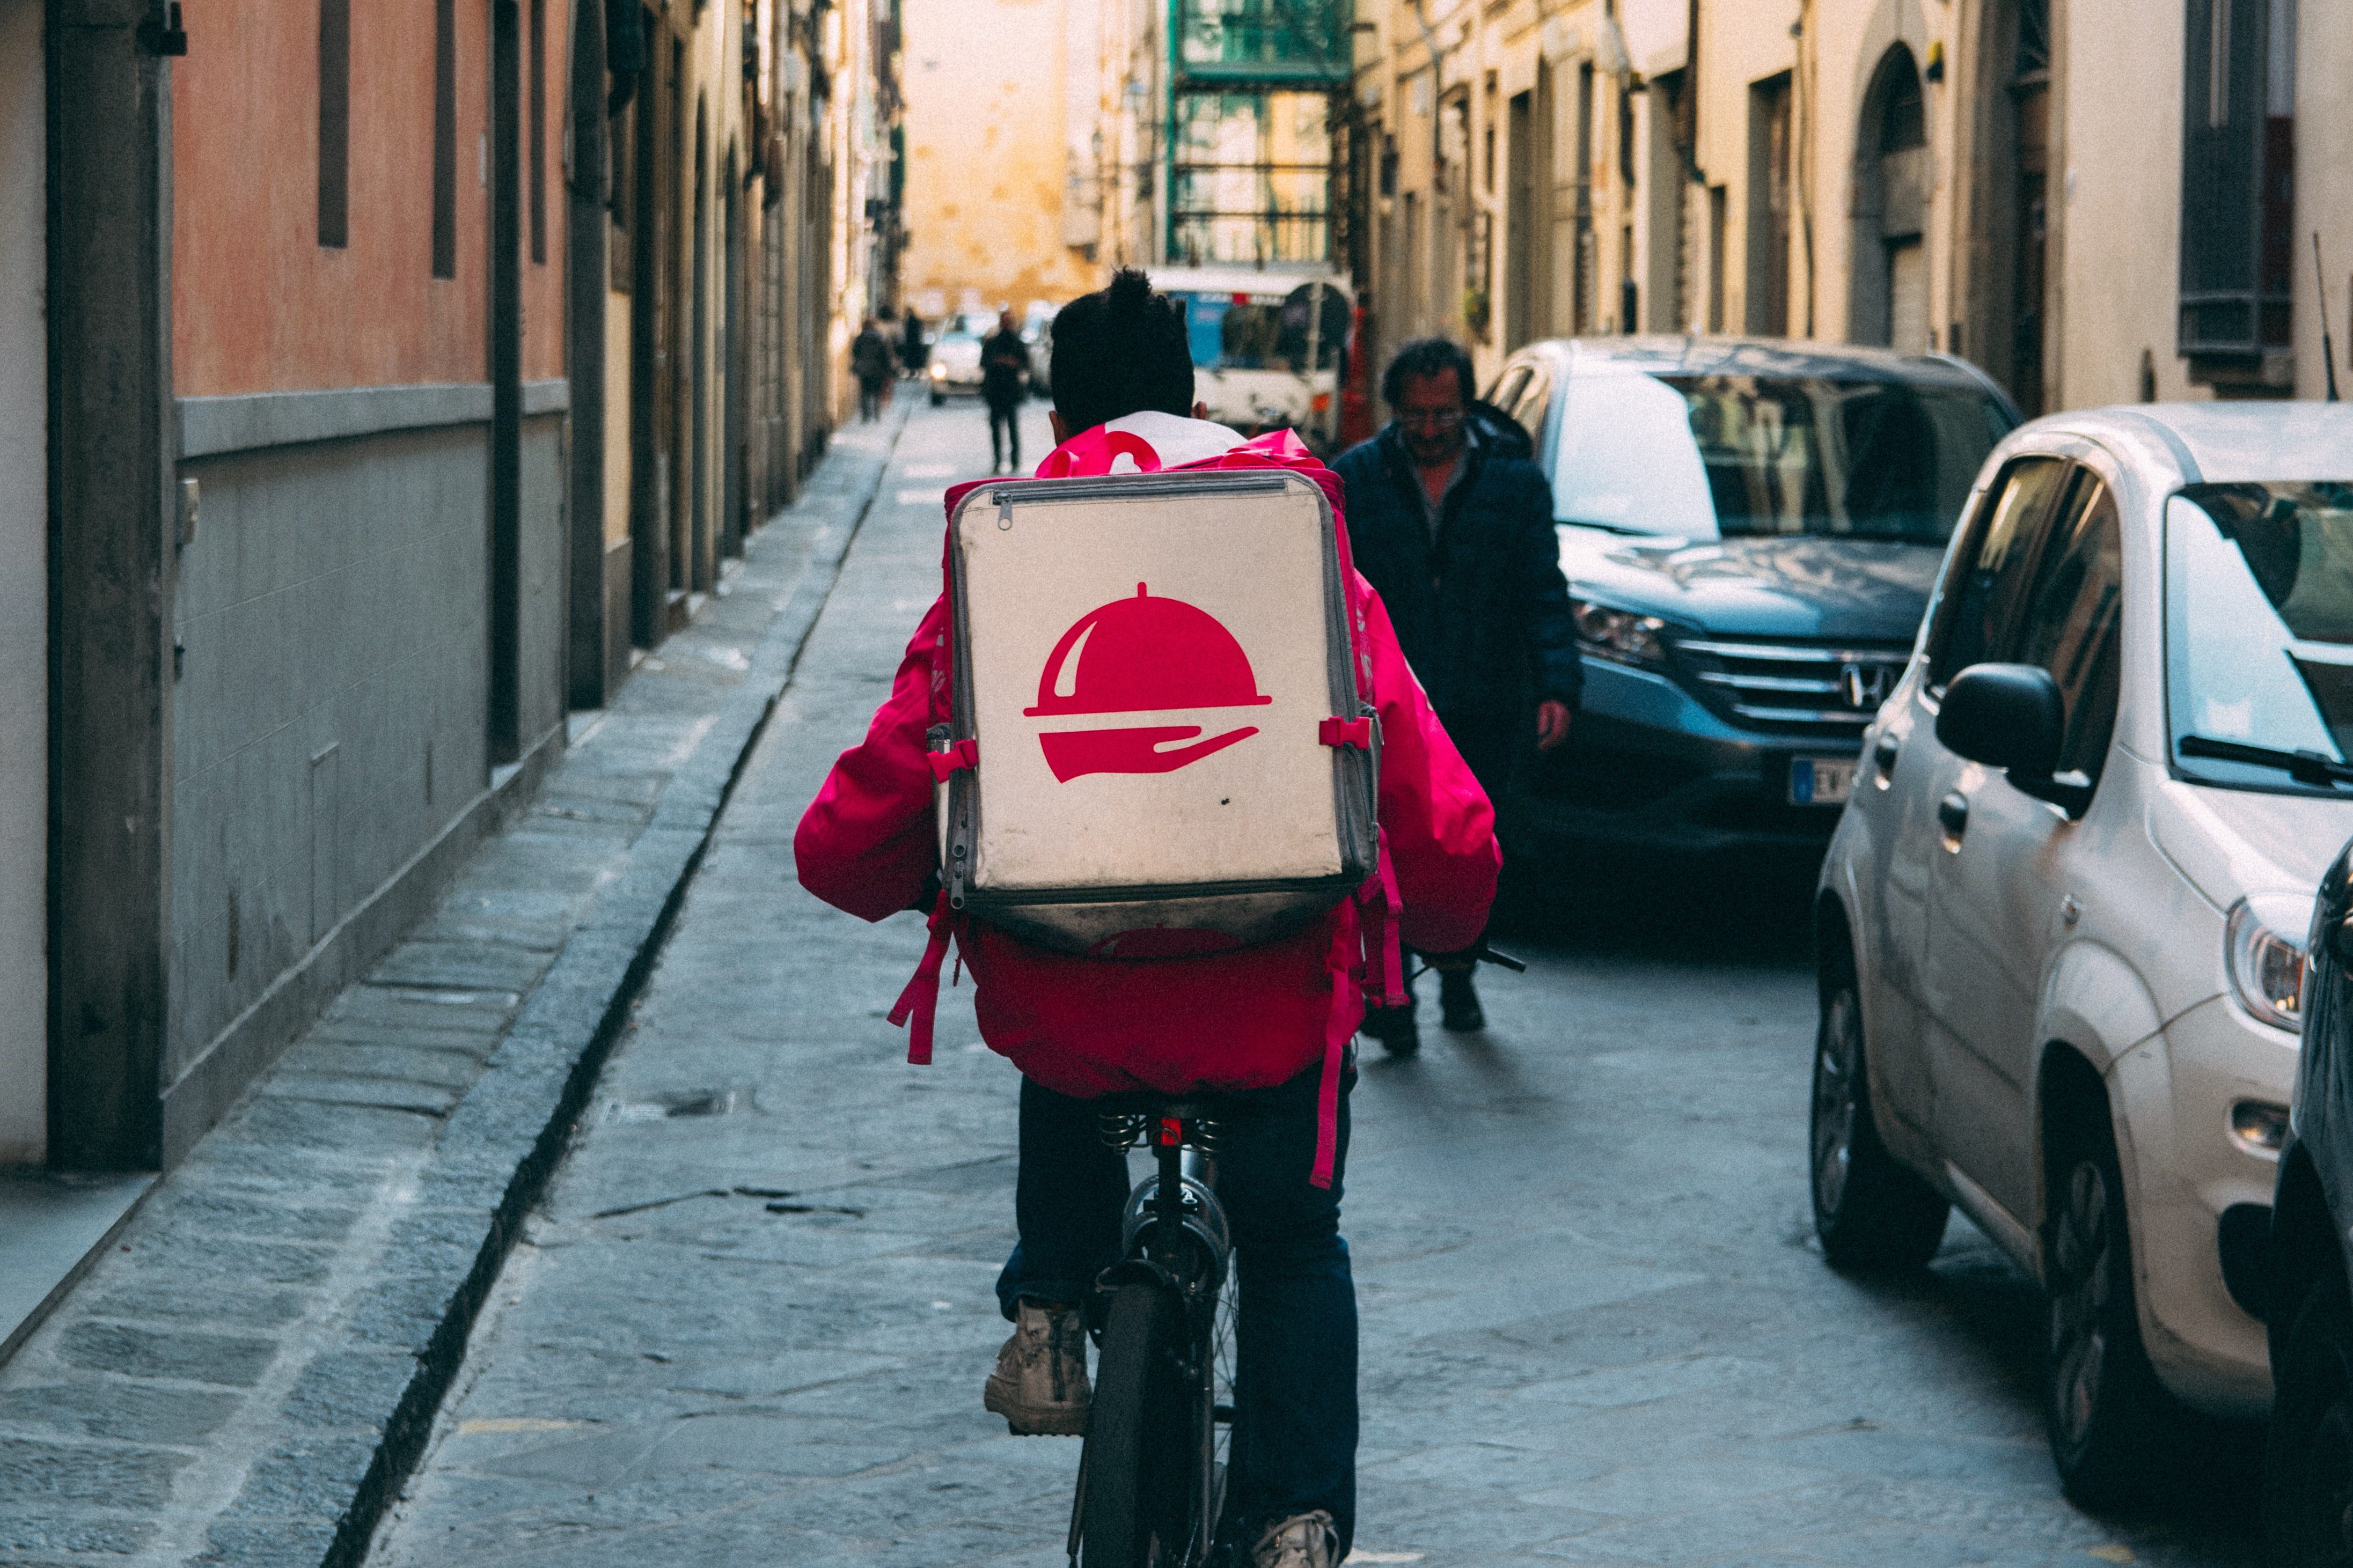 How to Start Offering Delivery or Takeout at Your Restaurant